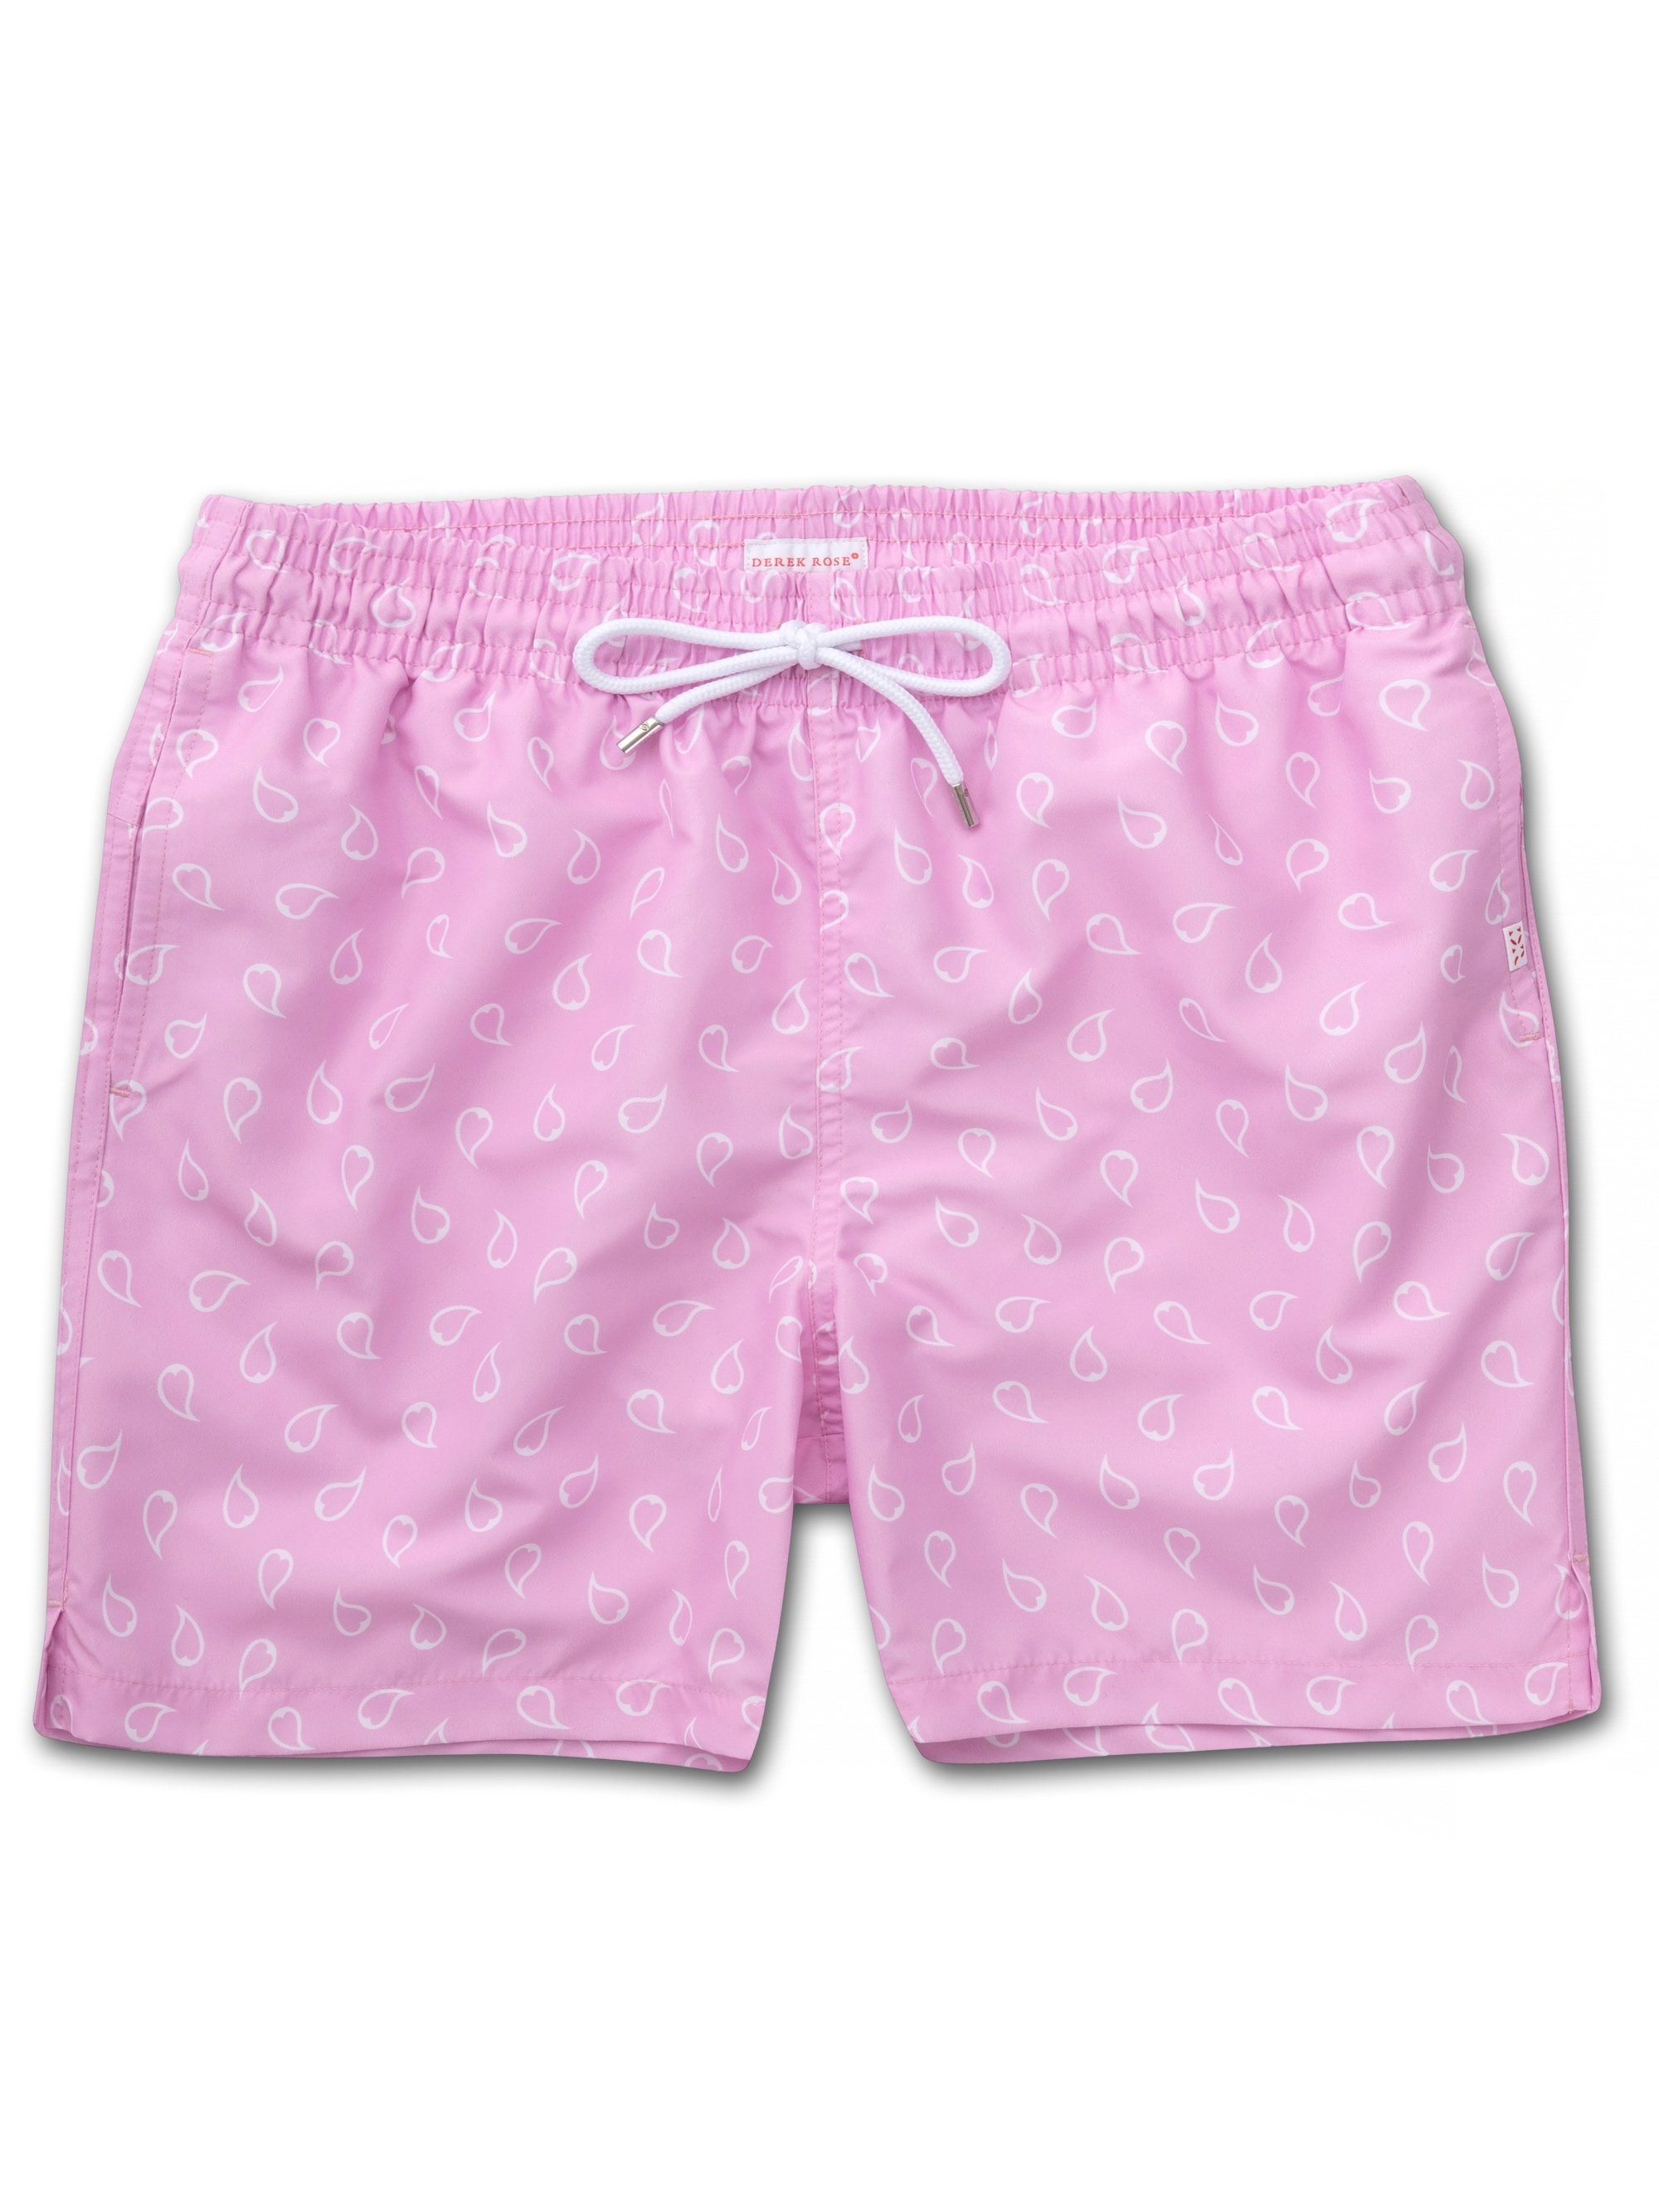 Men's Classic Fit Swim Shorts Maui 30 Pink